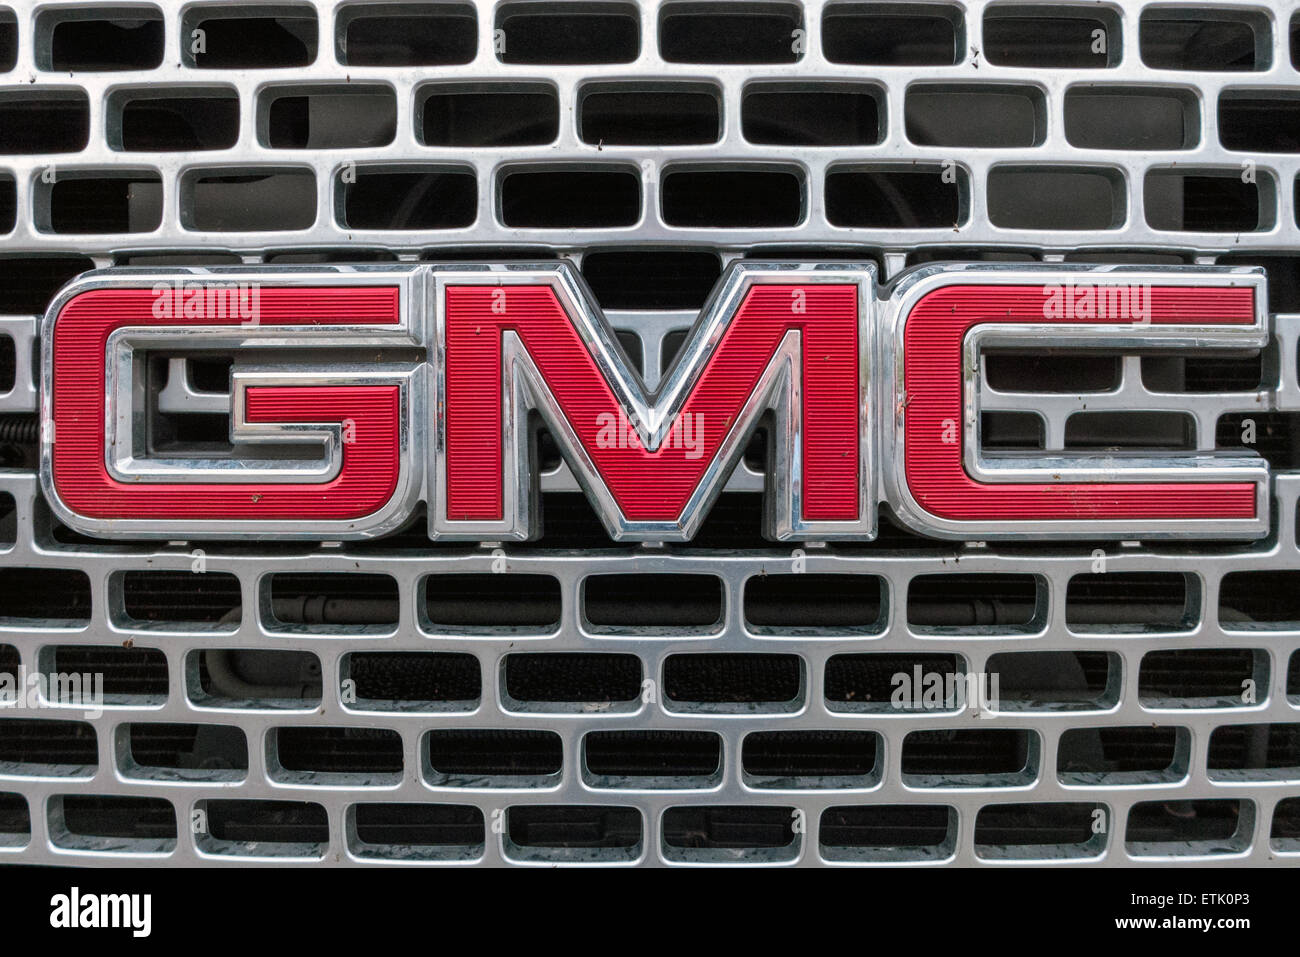 Gmc Logo Stock Photos & Gmc Logo Stock Images - Alamy